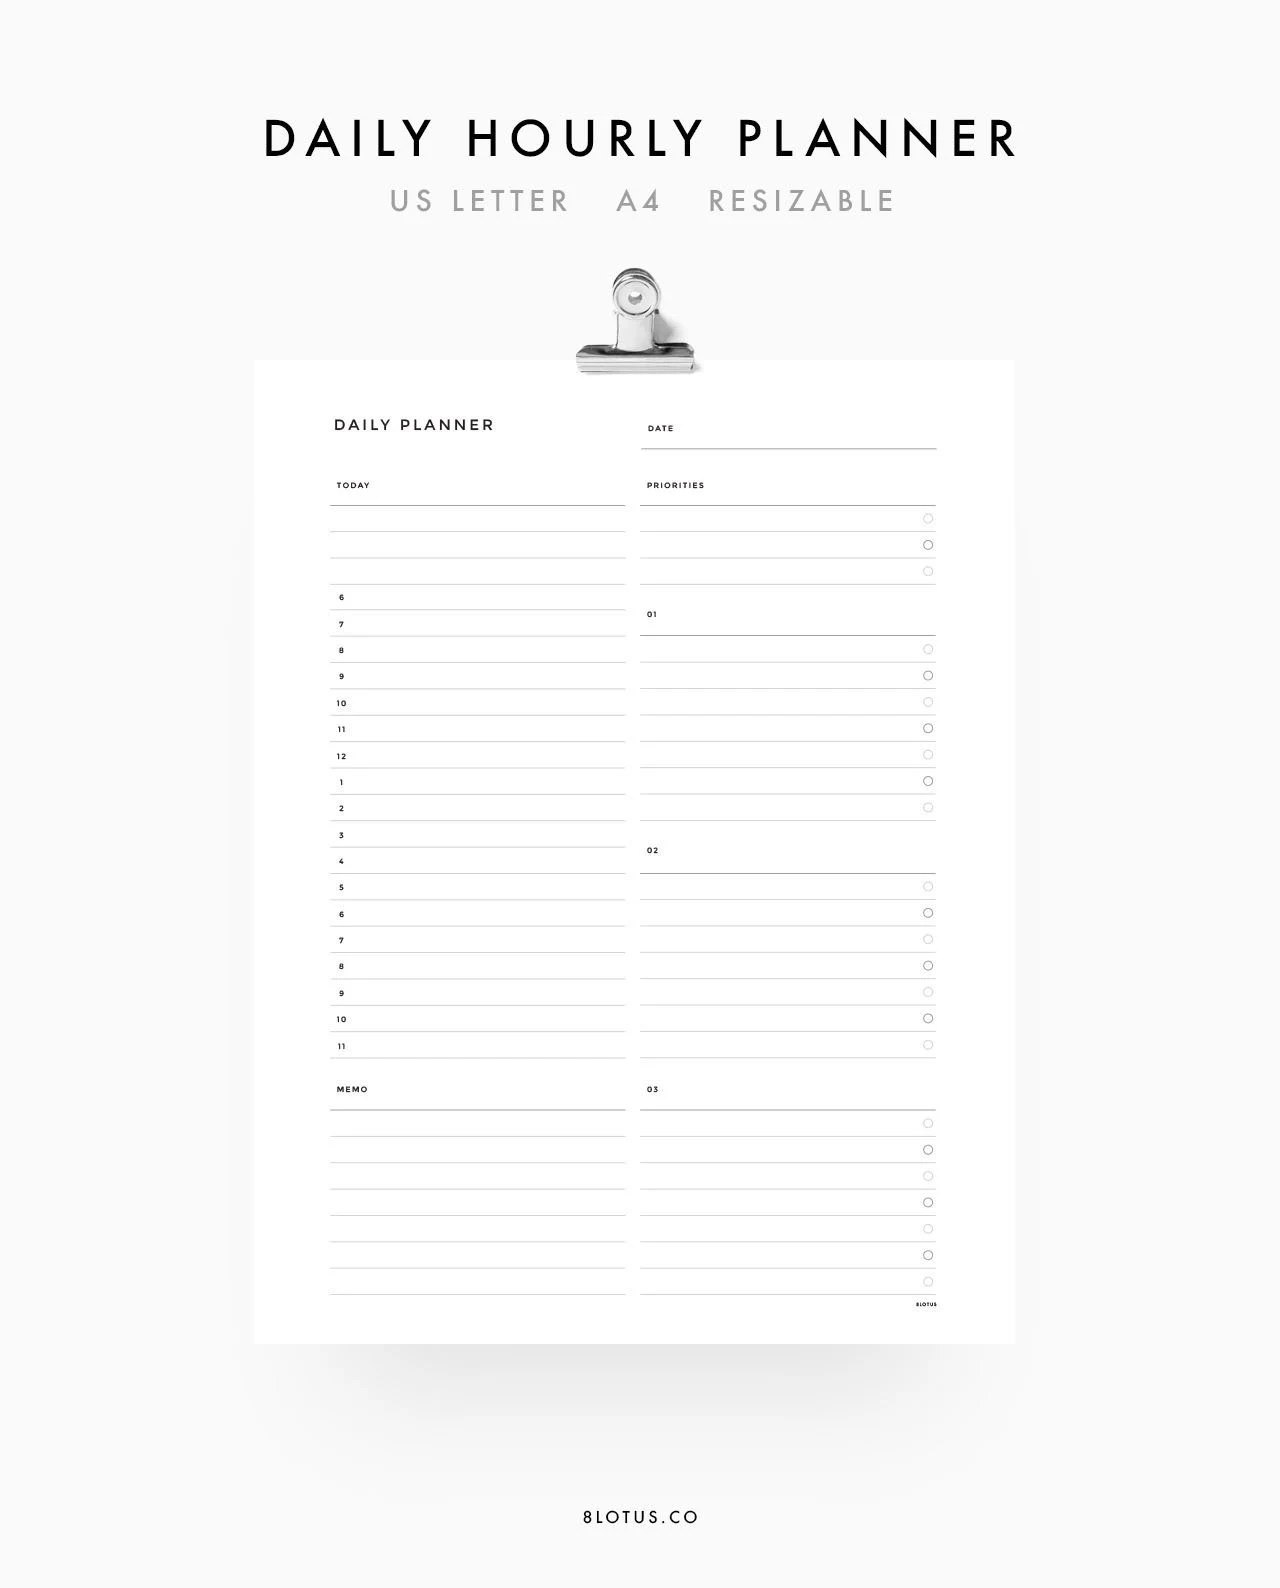 Daily Schedule Planner A4 US Letter Daily Planner Etsy